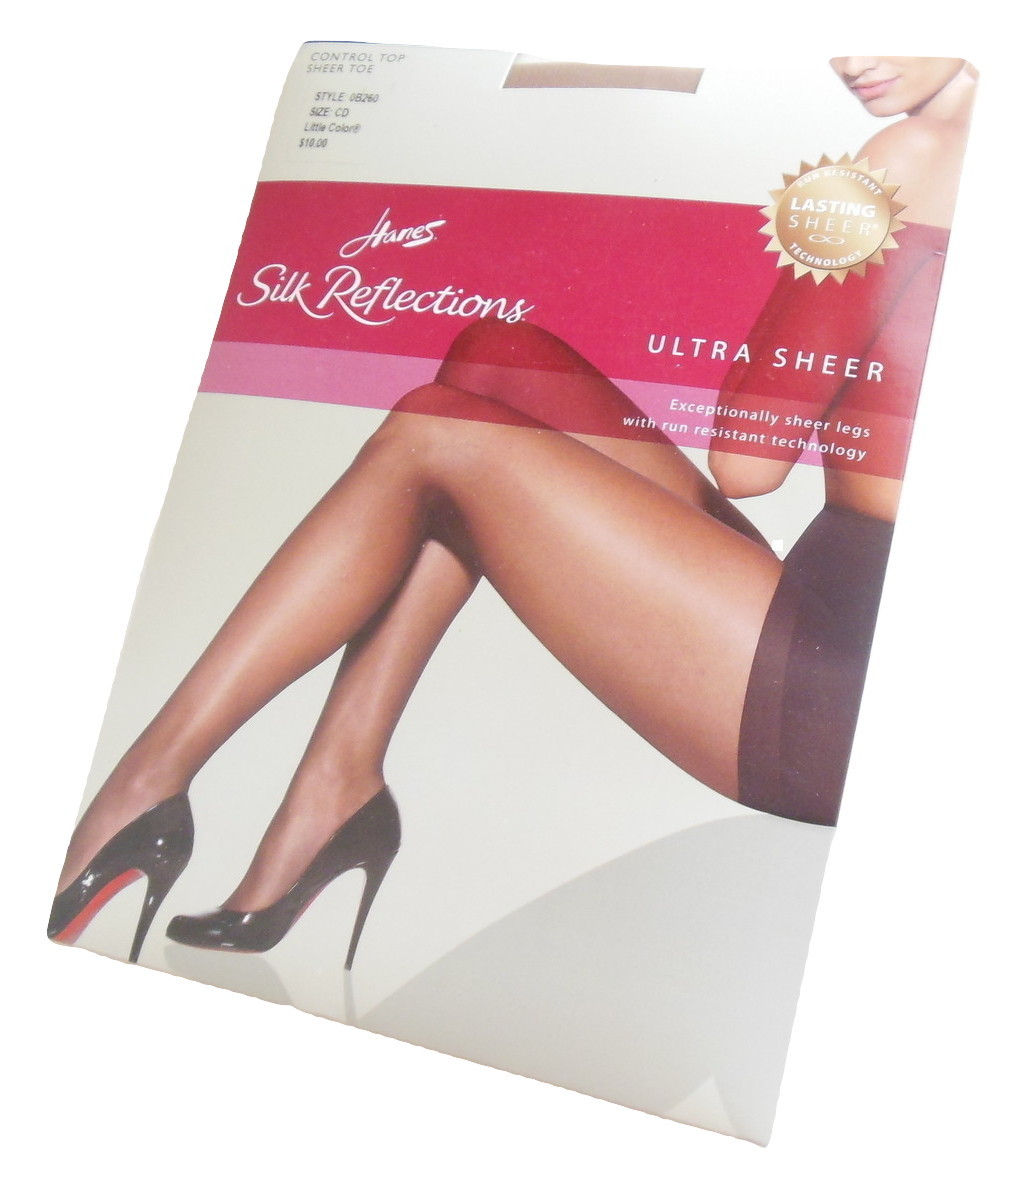 faeea082052 Hanes Silk Reflections Sheer Toe Pantyhose CD M L Little Color Run Resistant